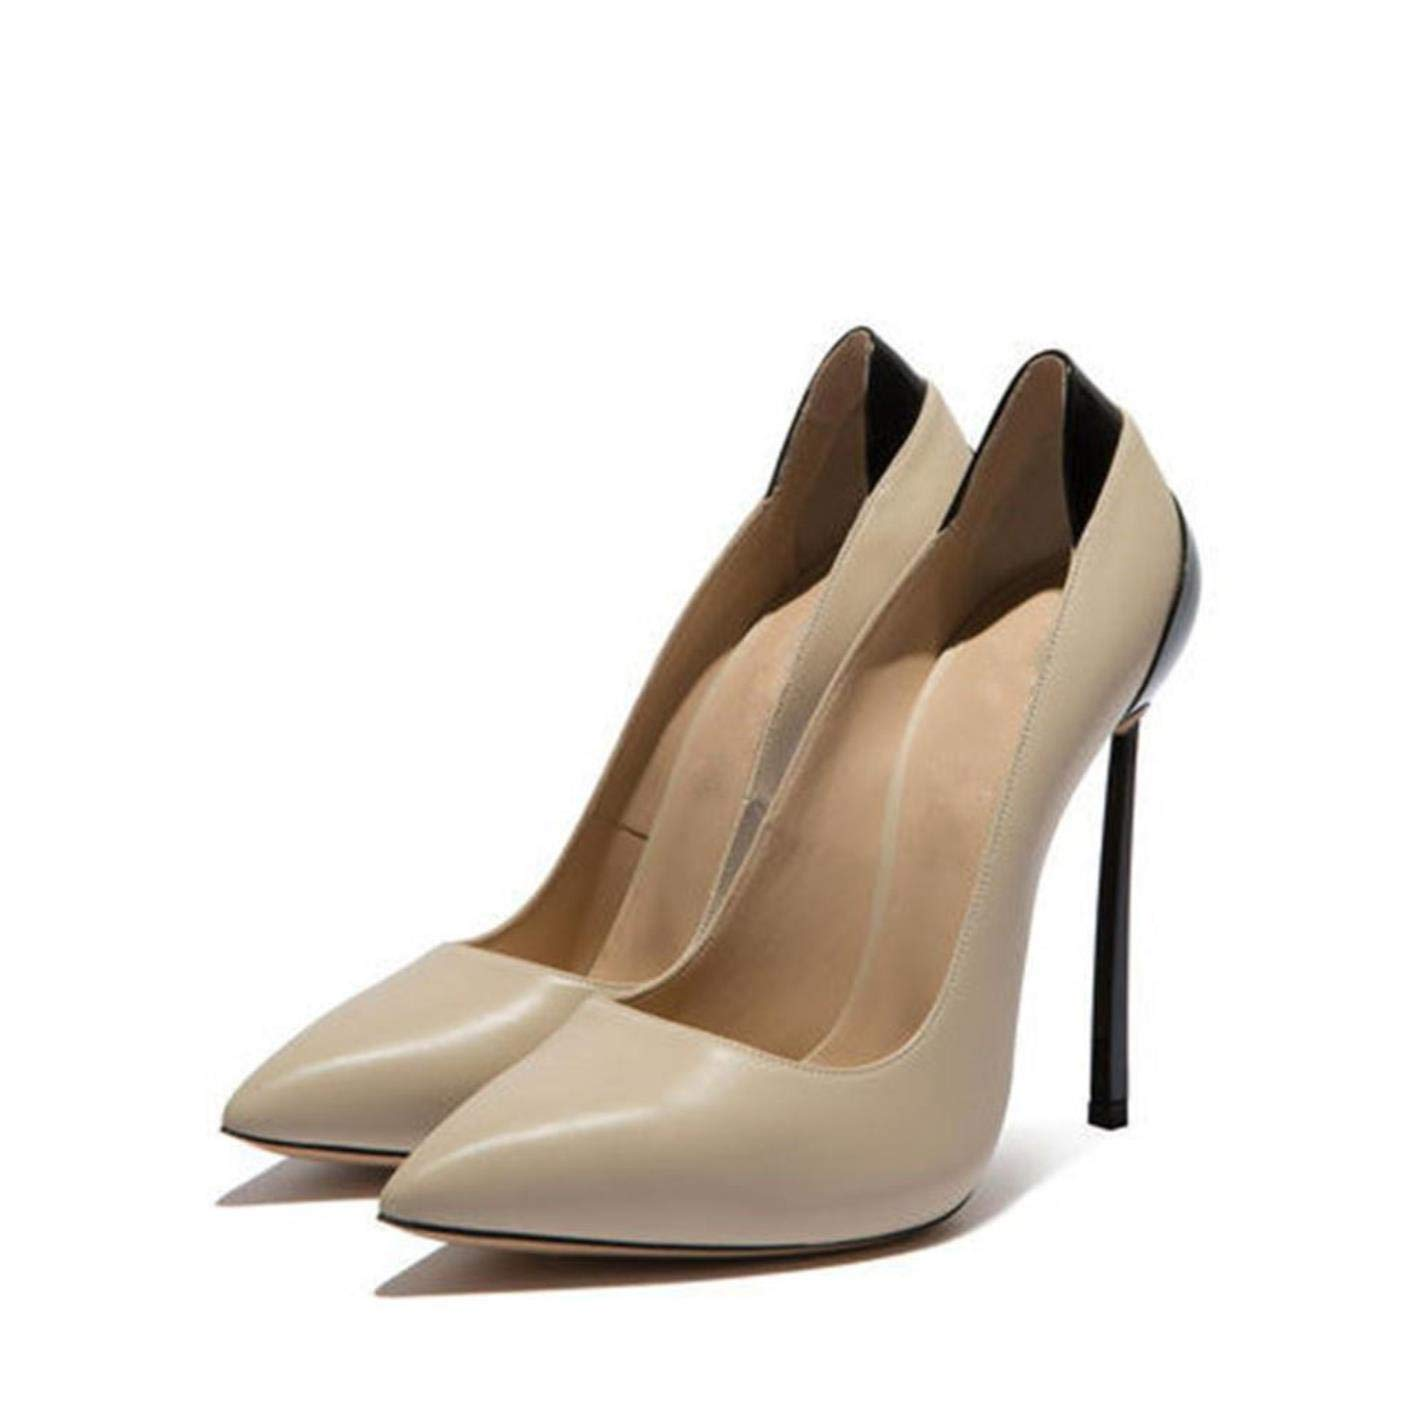 - Slip On High Heels Metal Party shoes Slip On Pumps Woman shoes